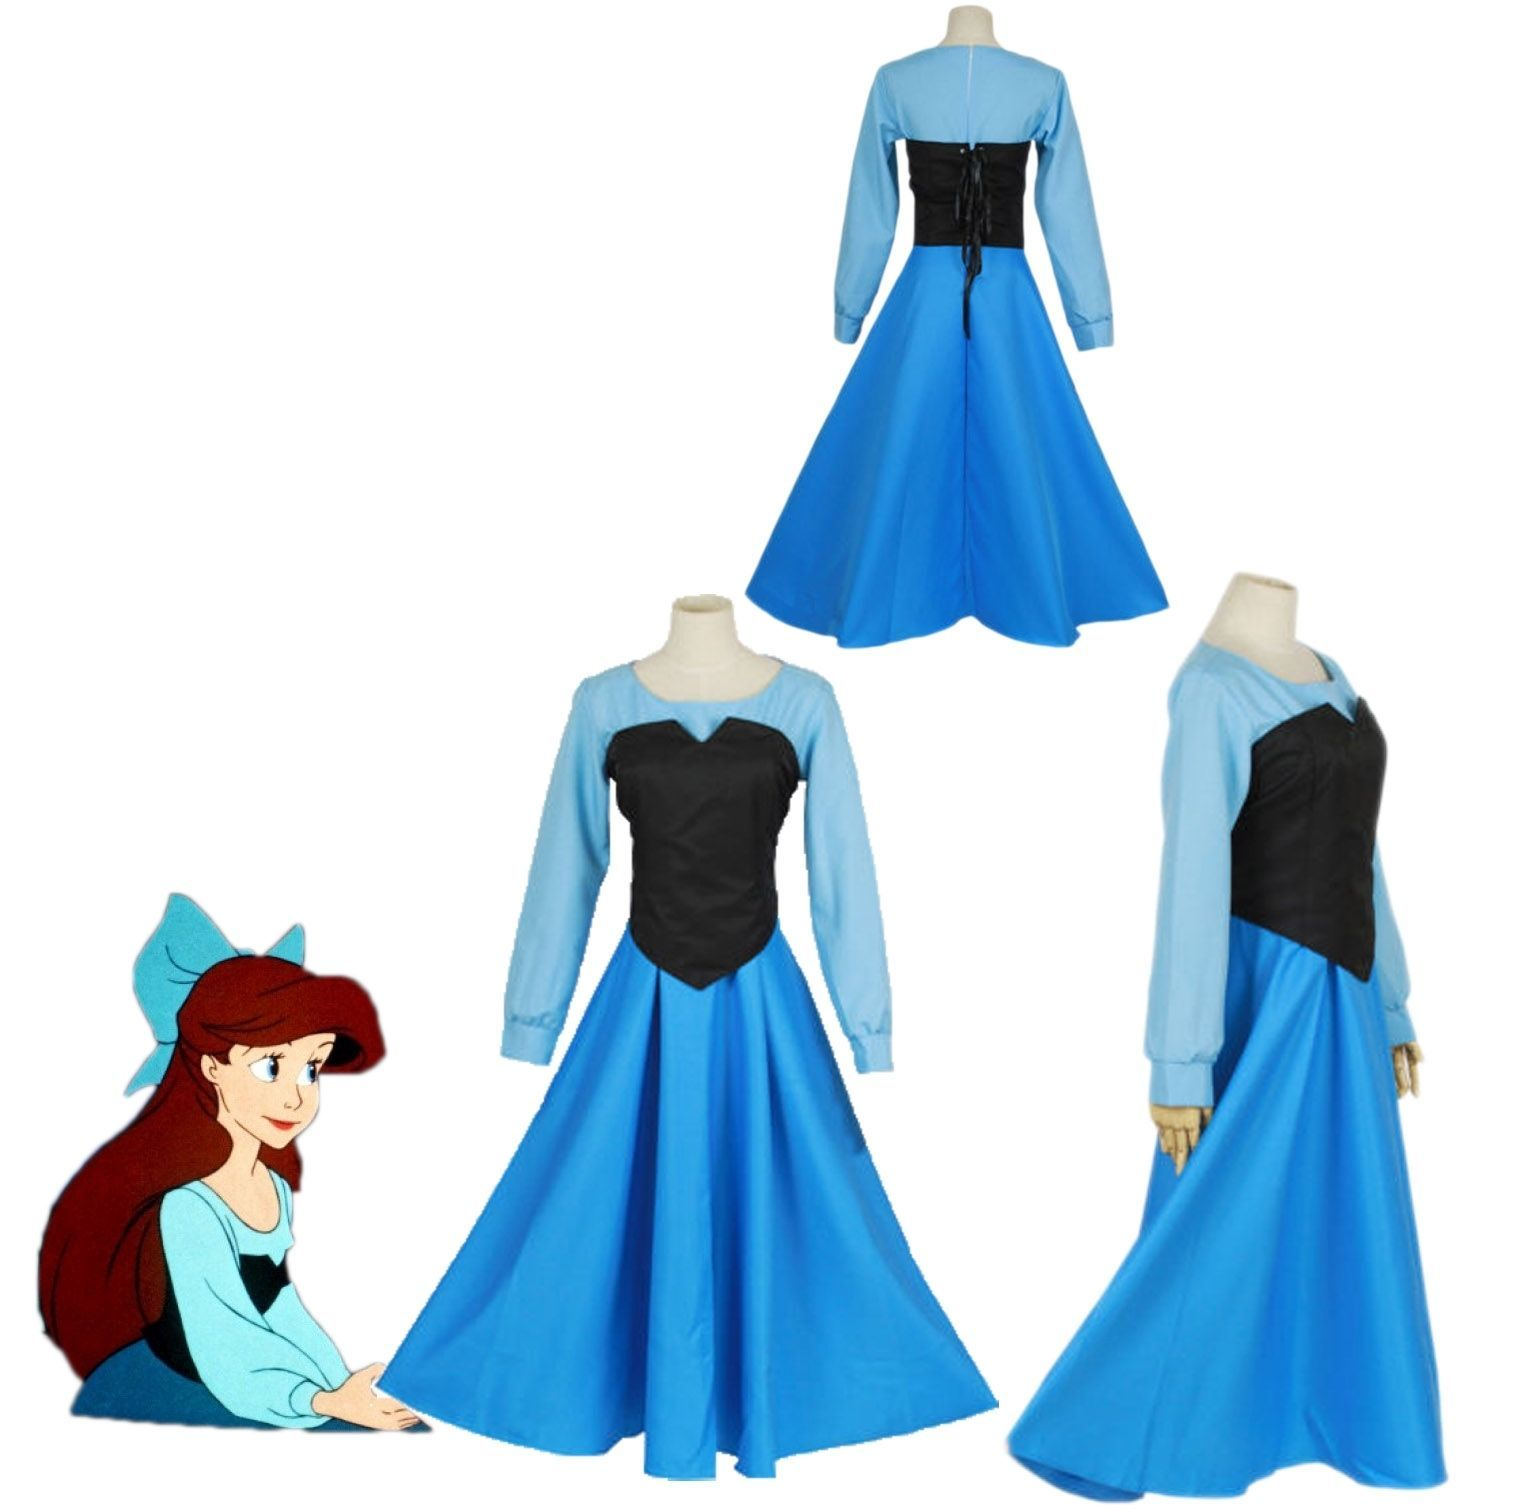 Cartoon The Little Mermaid Ariel Mermaid Princess Ariel Dress cosplay costume, used for sale  USA